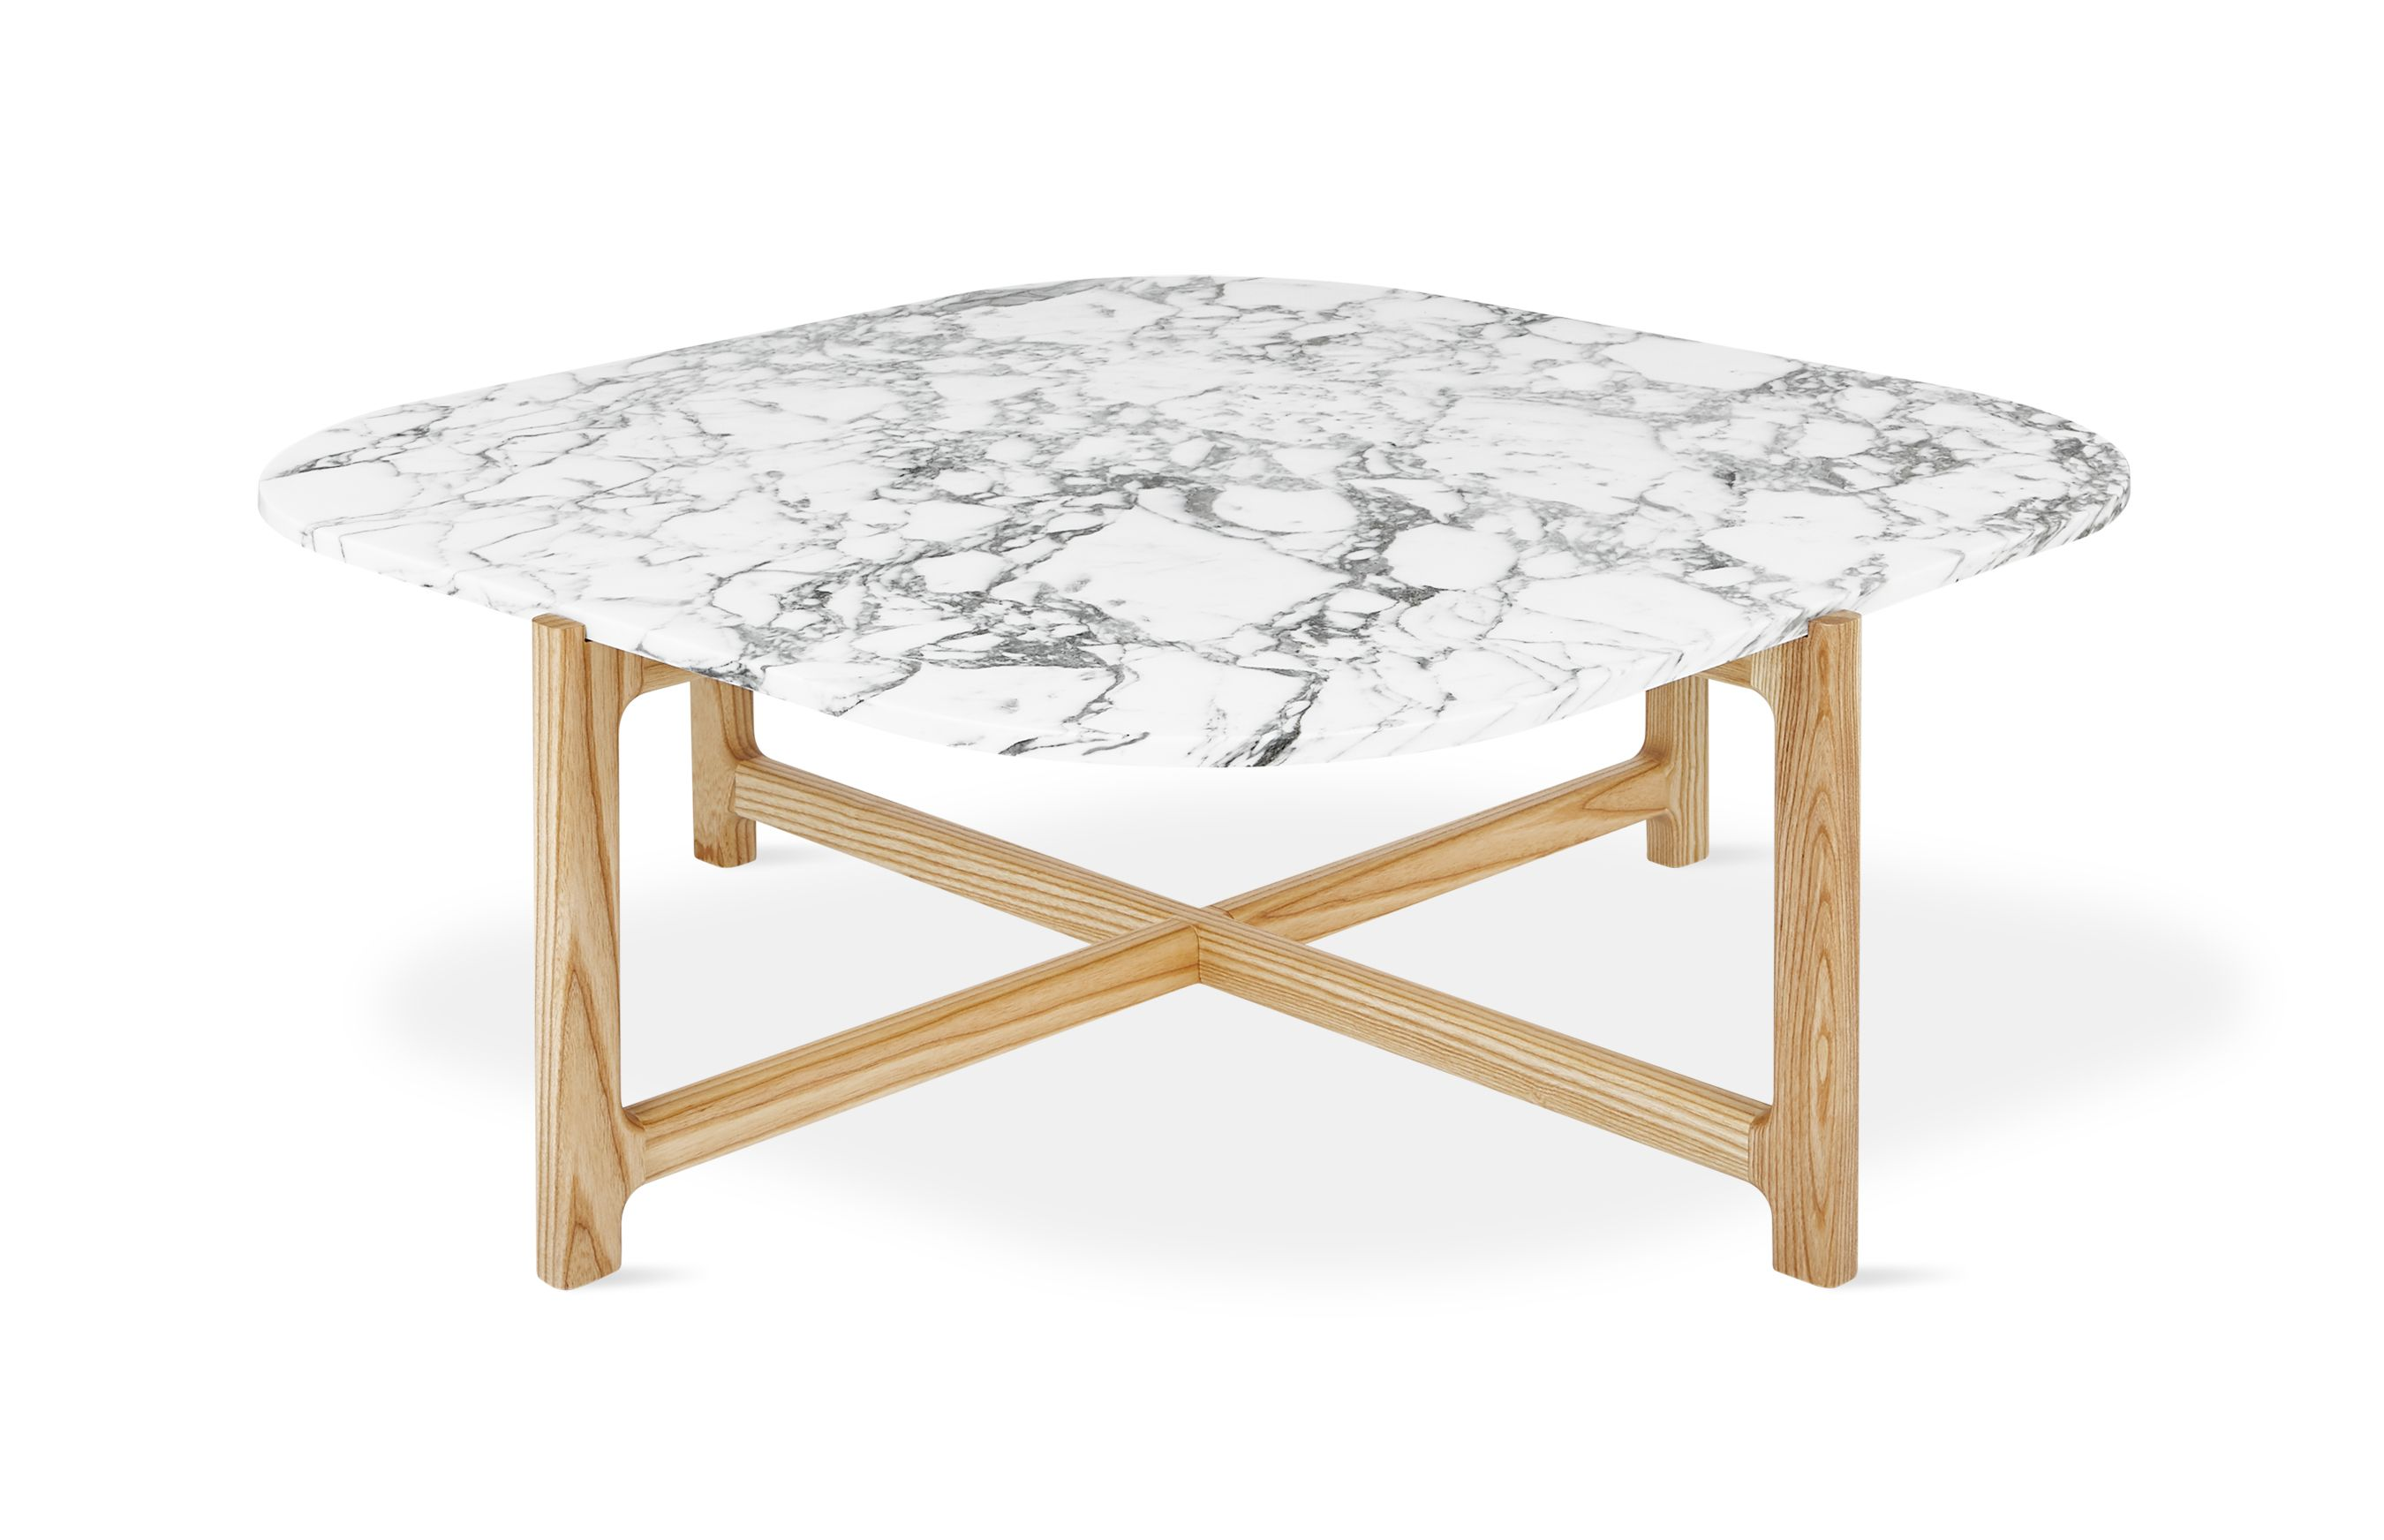 Quarry Square Coffee Table Accent Tables Coffee Table Marble Round Coffee Table Coffee Table Square [ 1744 x 2700 Pixel ]